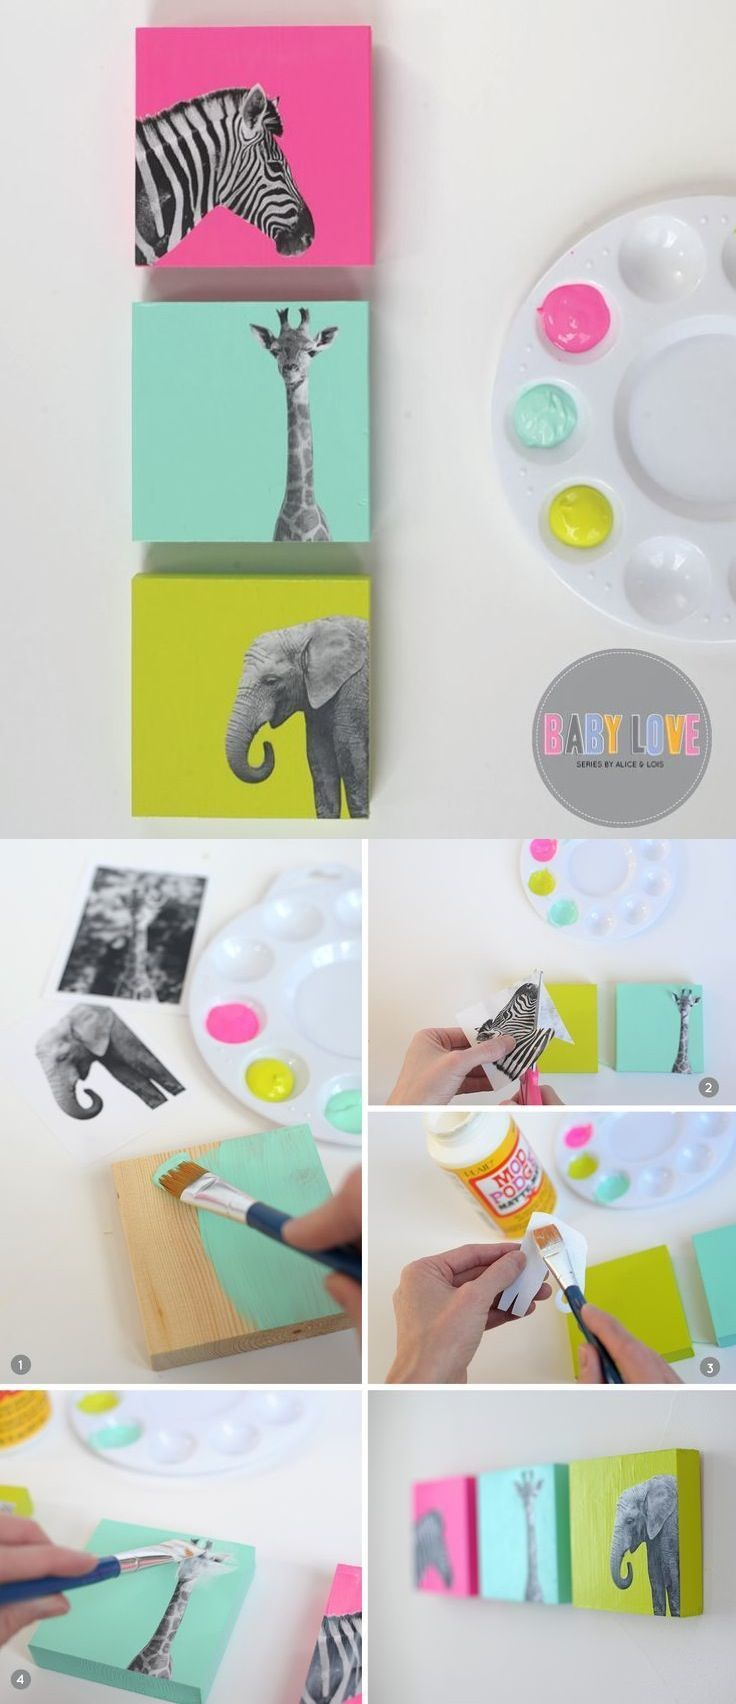 mommo design: 6 CUTE DIY PROJECTS FOR KIDS Kids Bedroom Inspiration kids bedroom organization #kids